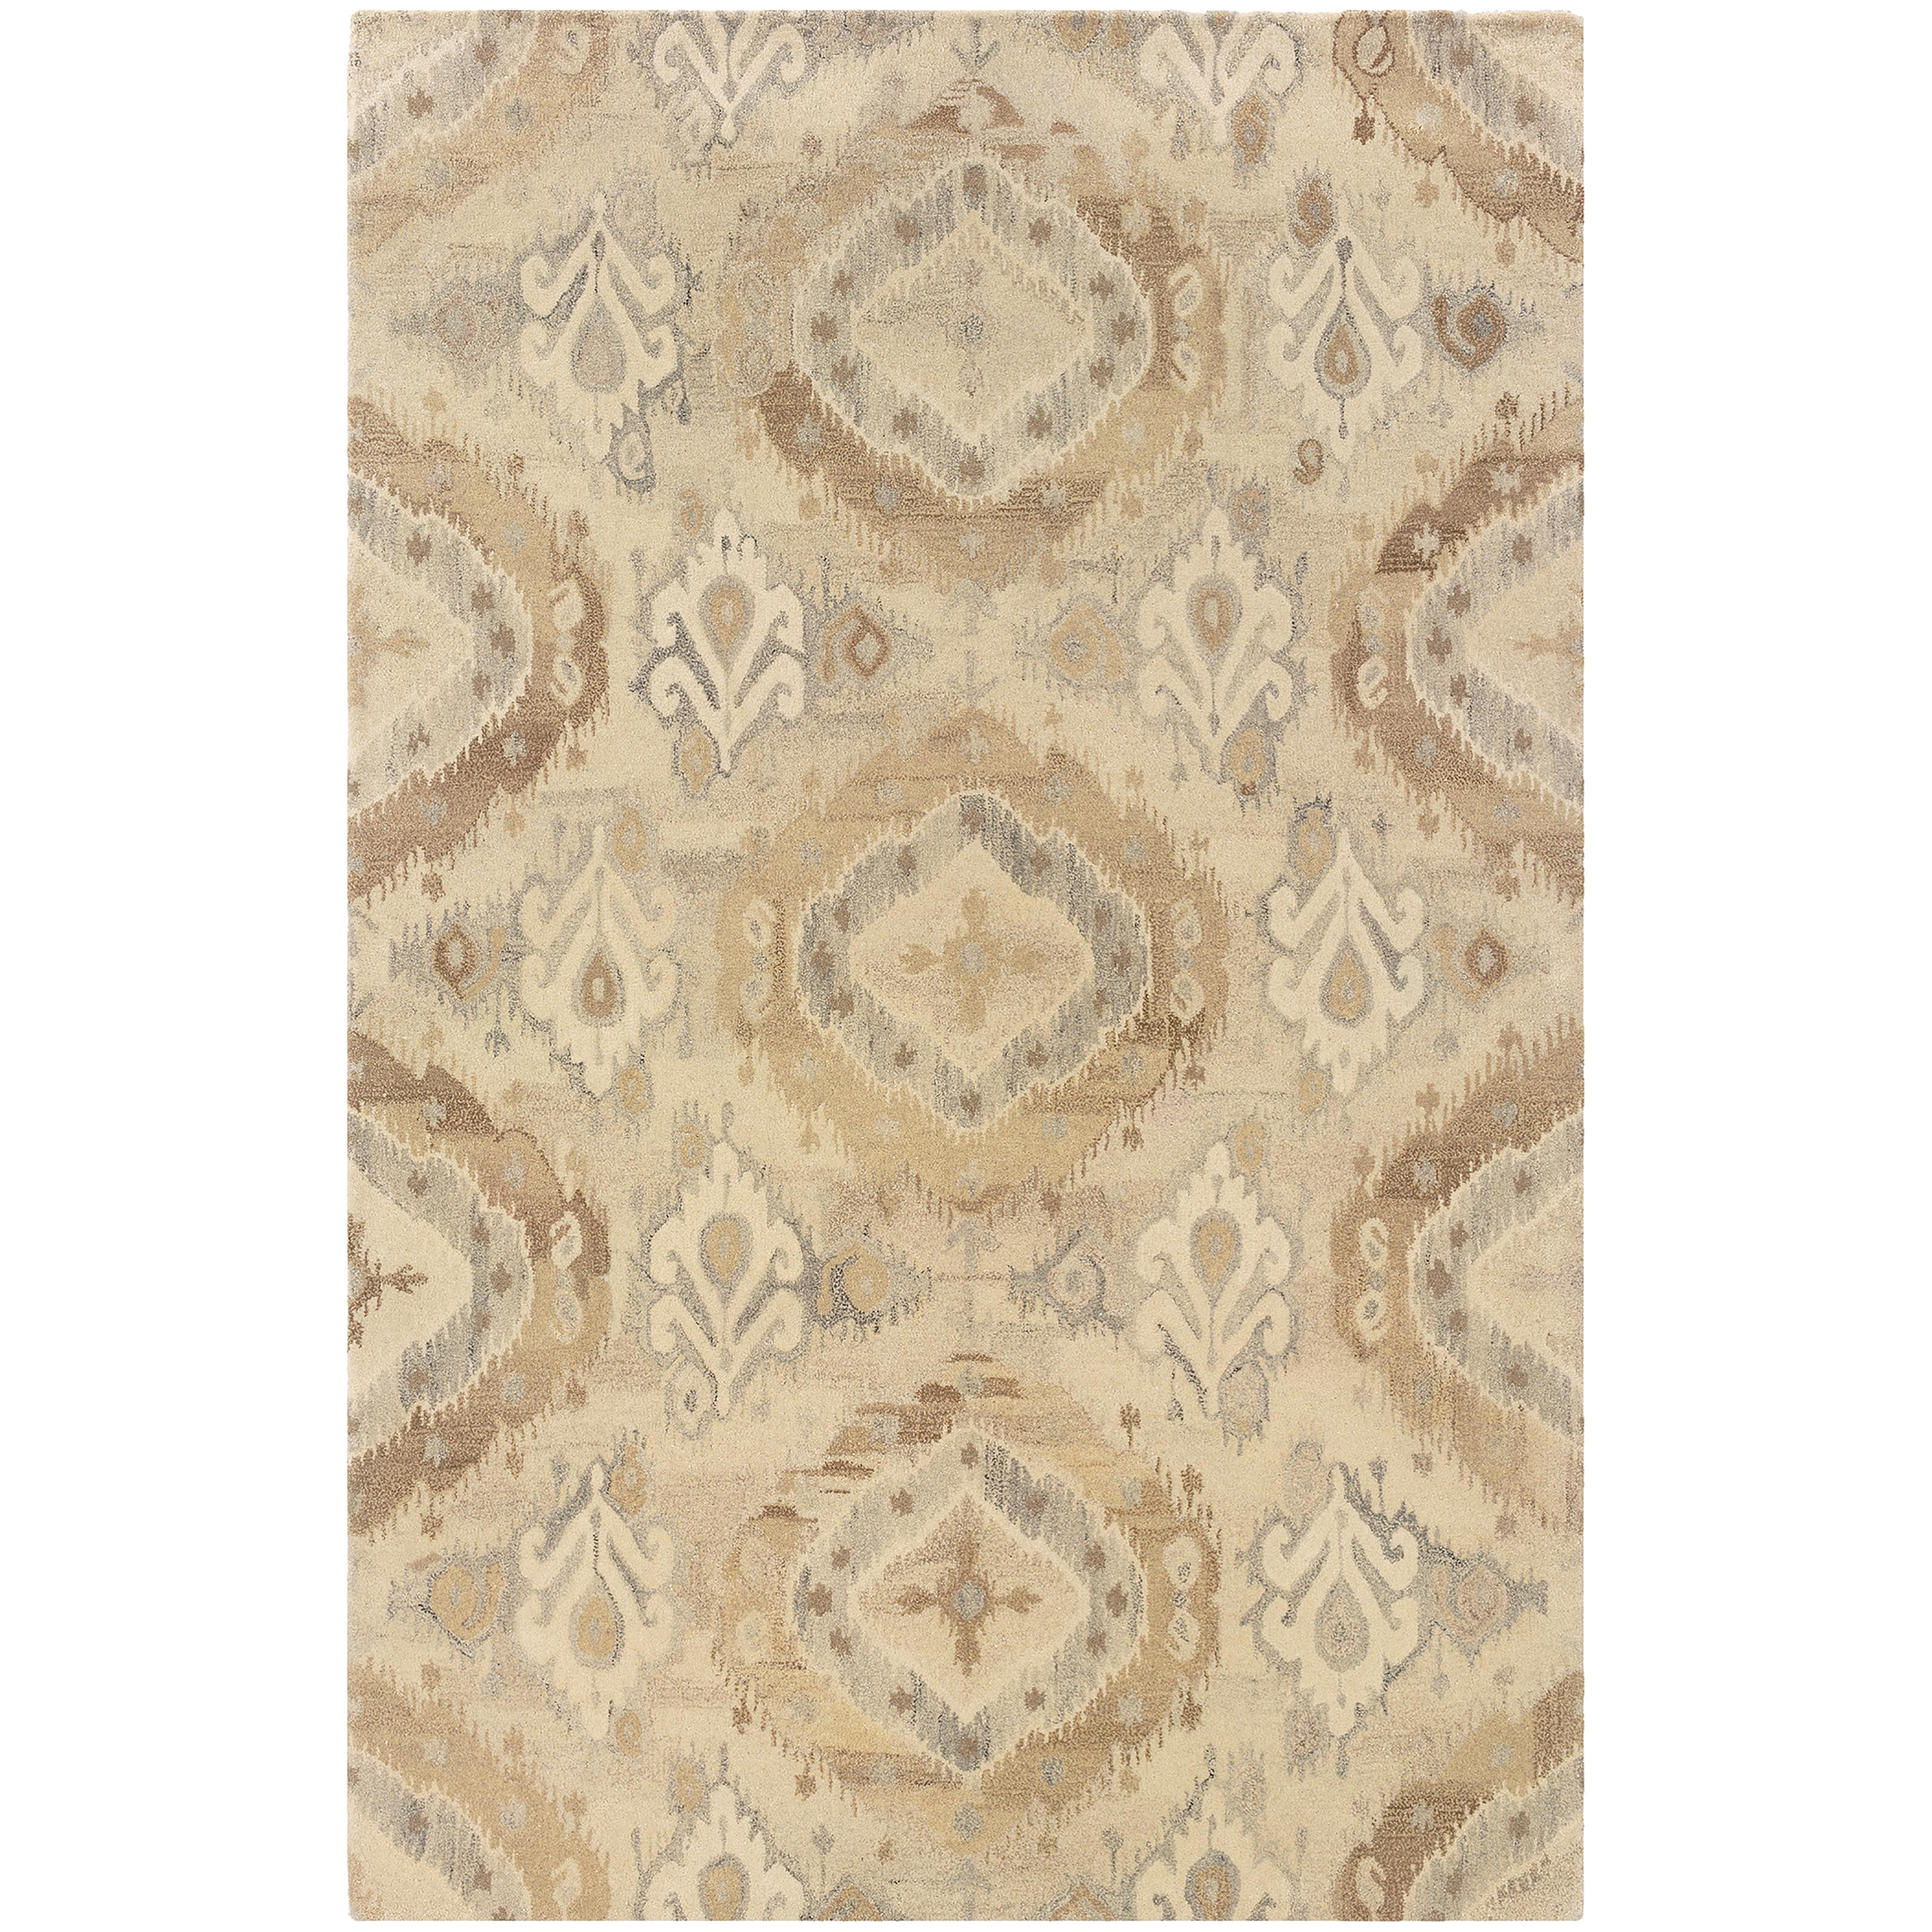 "Anastasia 10' 0"" X 13' 0"" Rug by Oriental Weavers at Novello Home Furnishings"